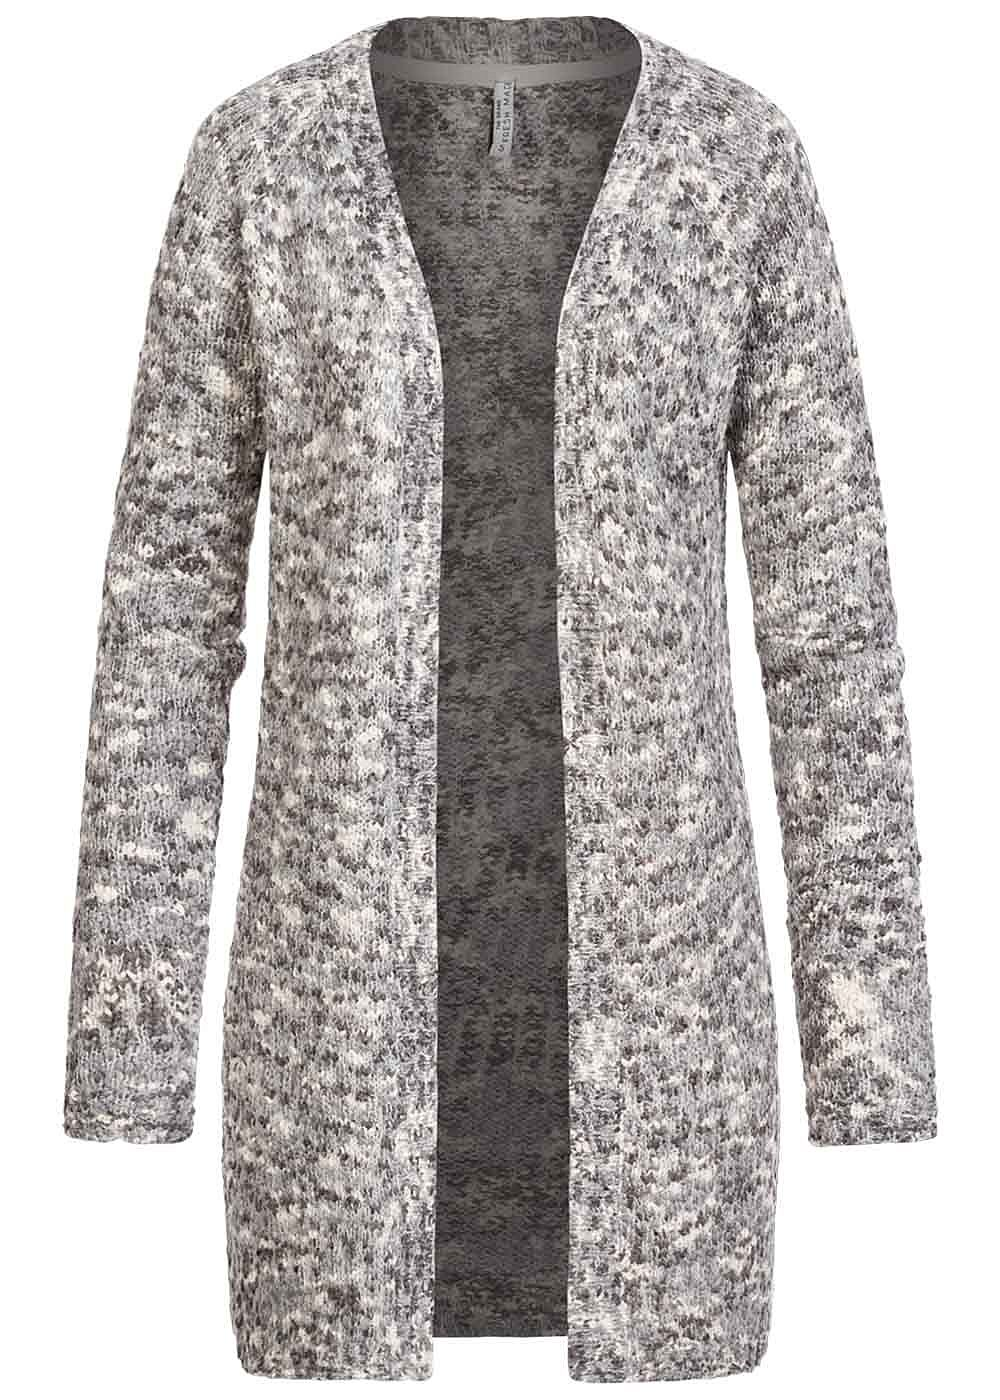 Fresh Made Damen 2-Tone Raglan Cardigan offener Schnitt dawn dusty grau weiss - Art.-Nr.: 19115271